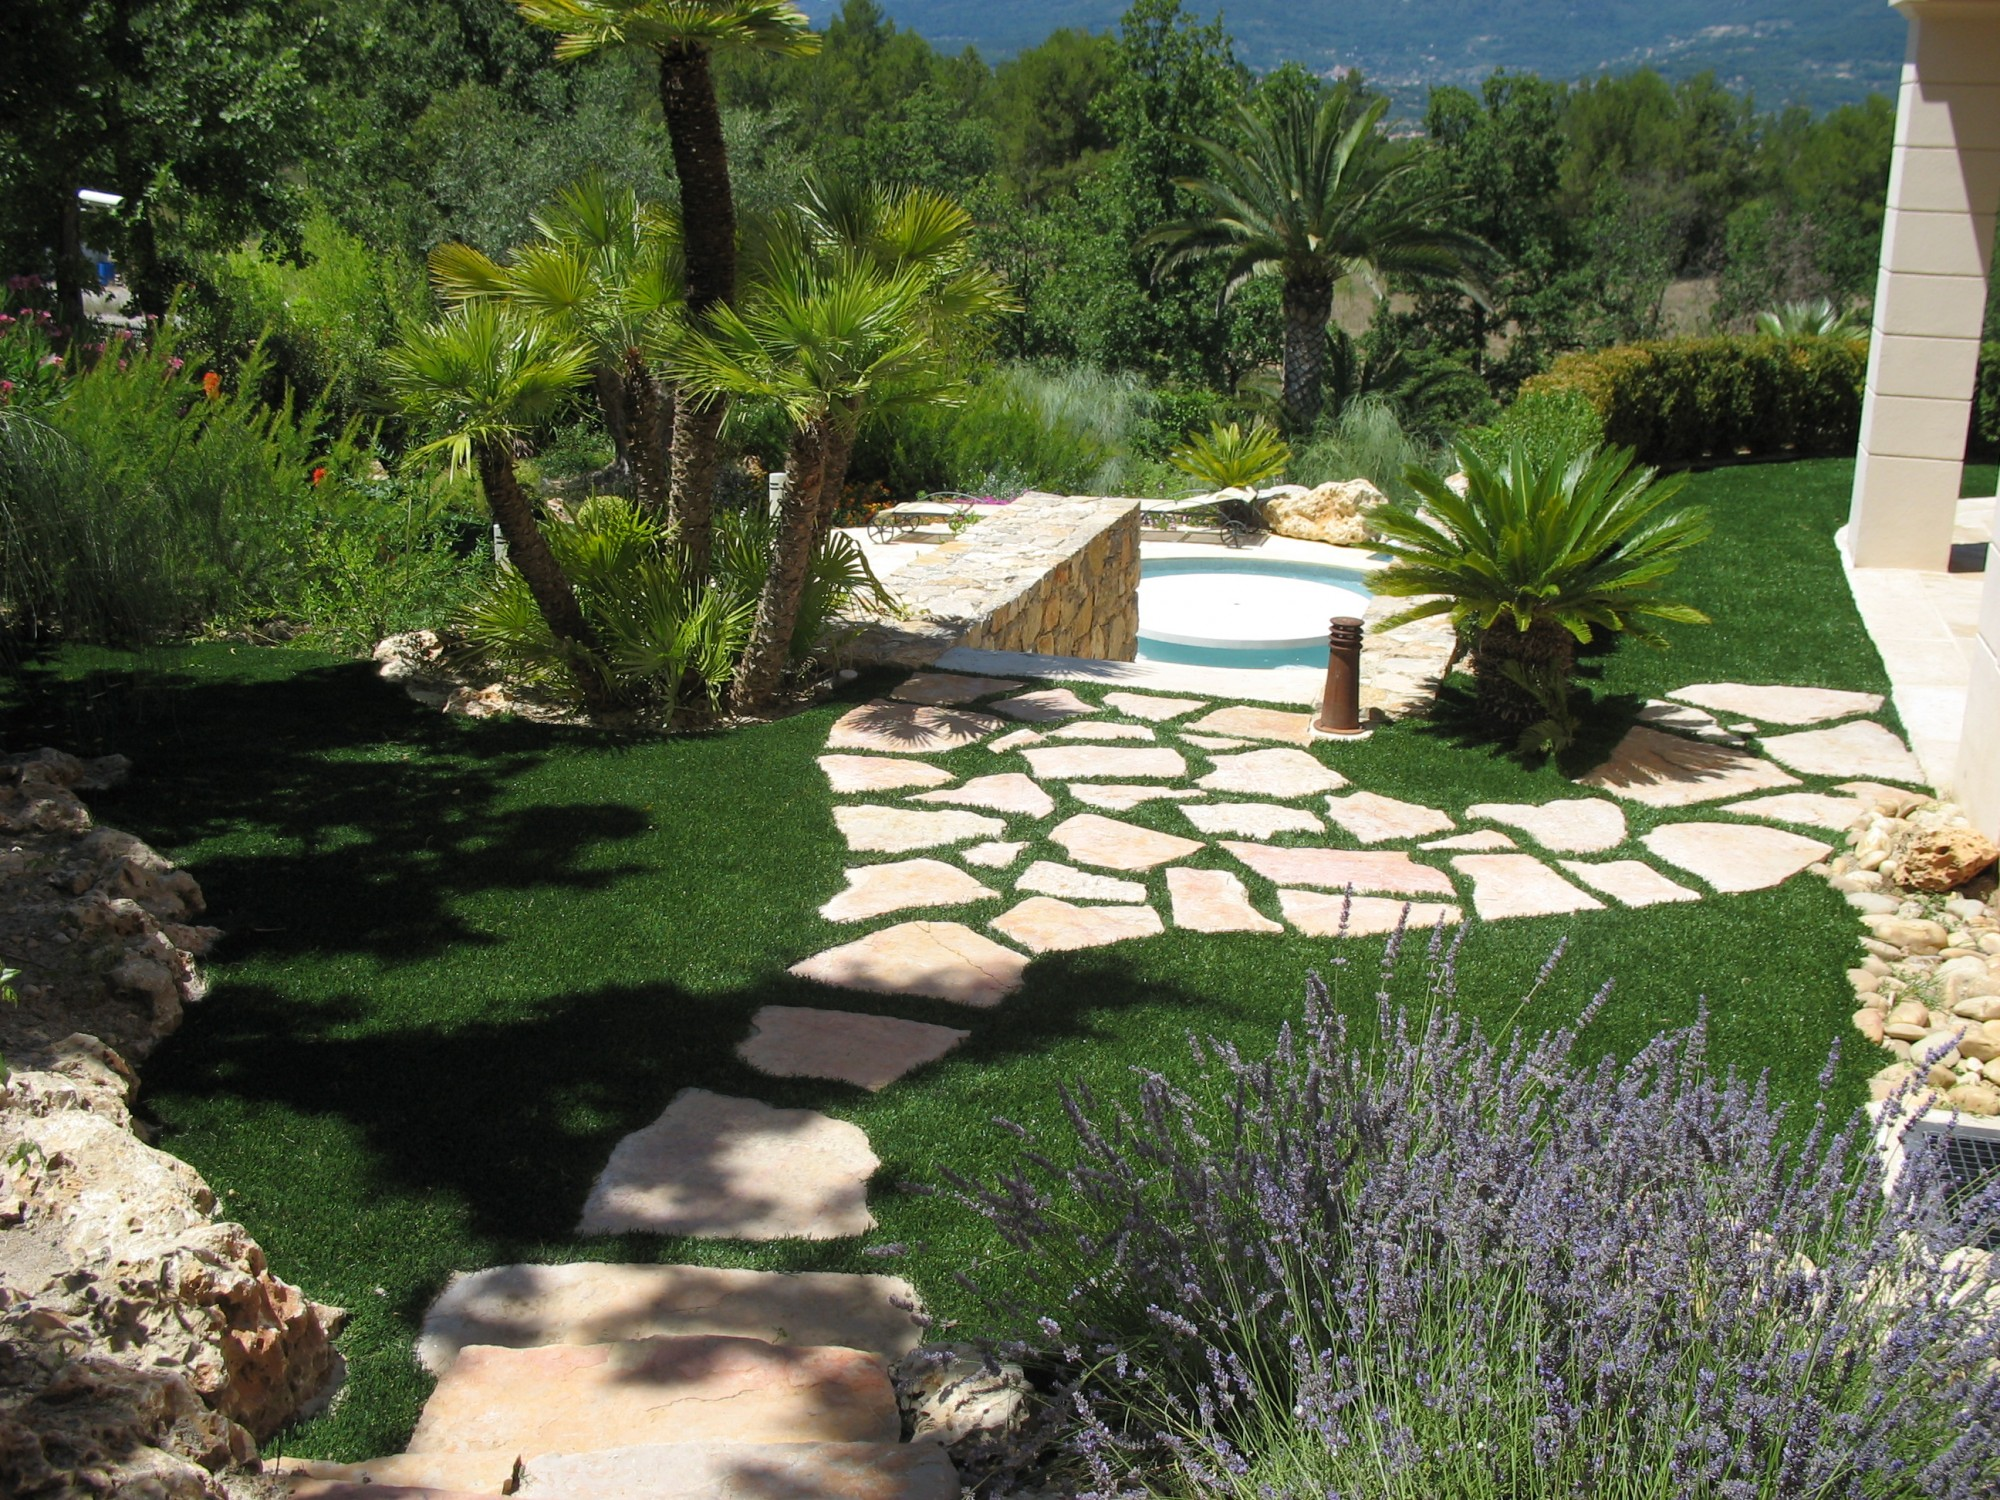 Am nagement d 39 un jardin synth tique saint tropez la pose for Agencement terrasse jardin